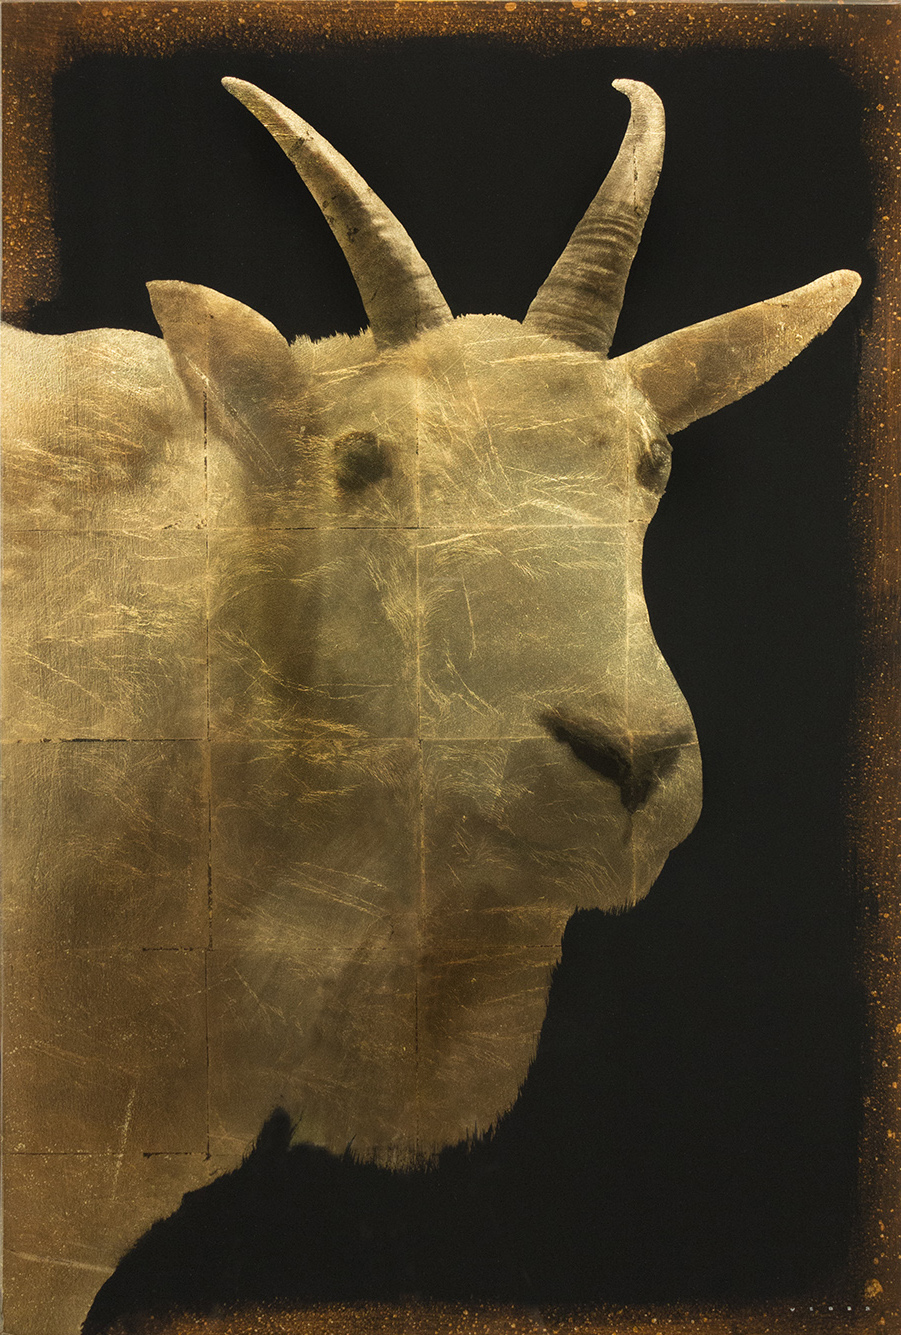 MOUNTAIN GOAT, 36 X 24